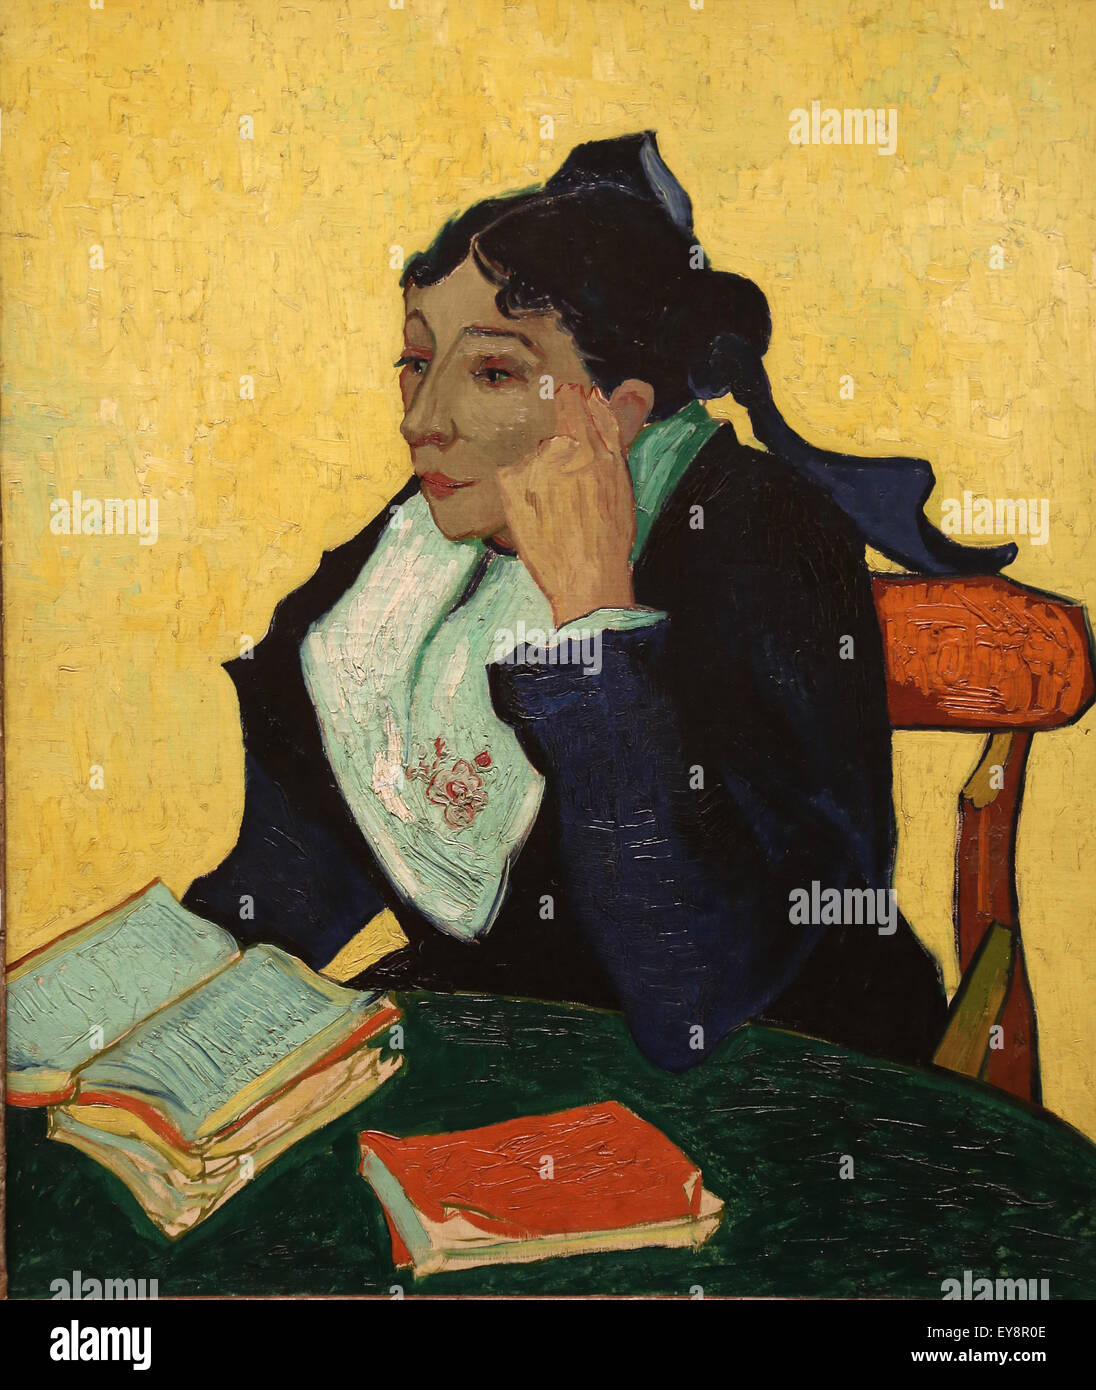 Vincent van Gogh (1853-1890).  Dutch painter. L'Arlesienne: Madame Joseph-Michel Ginoux (Marie Julien, 1848 - Stock Image